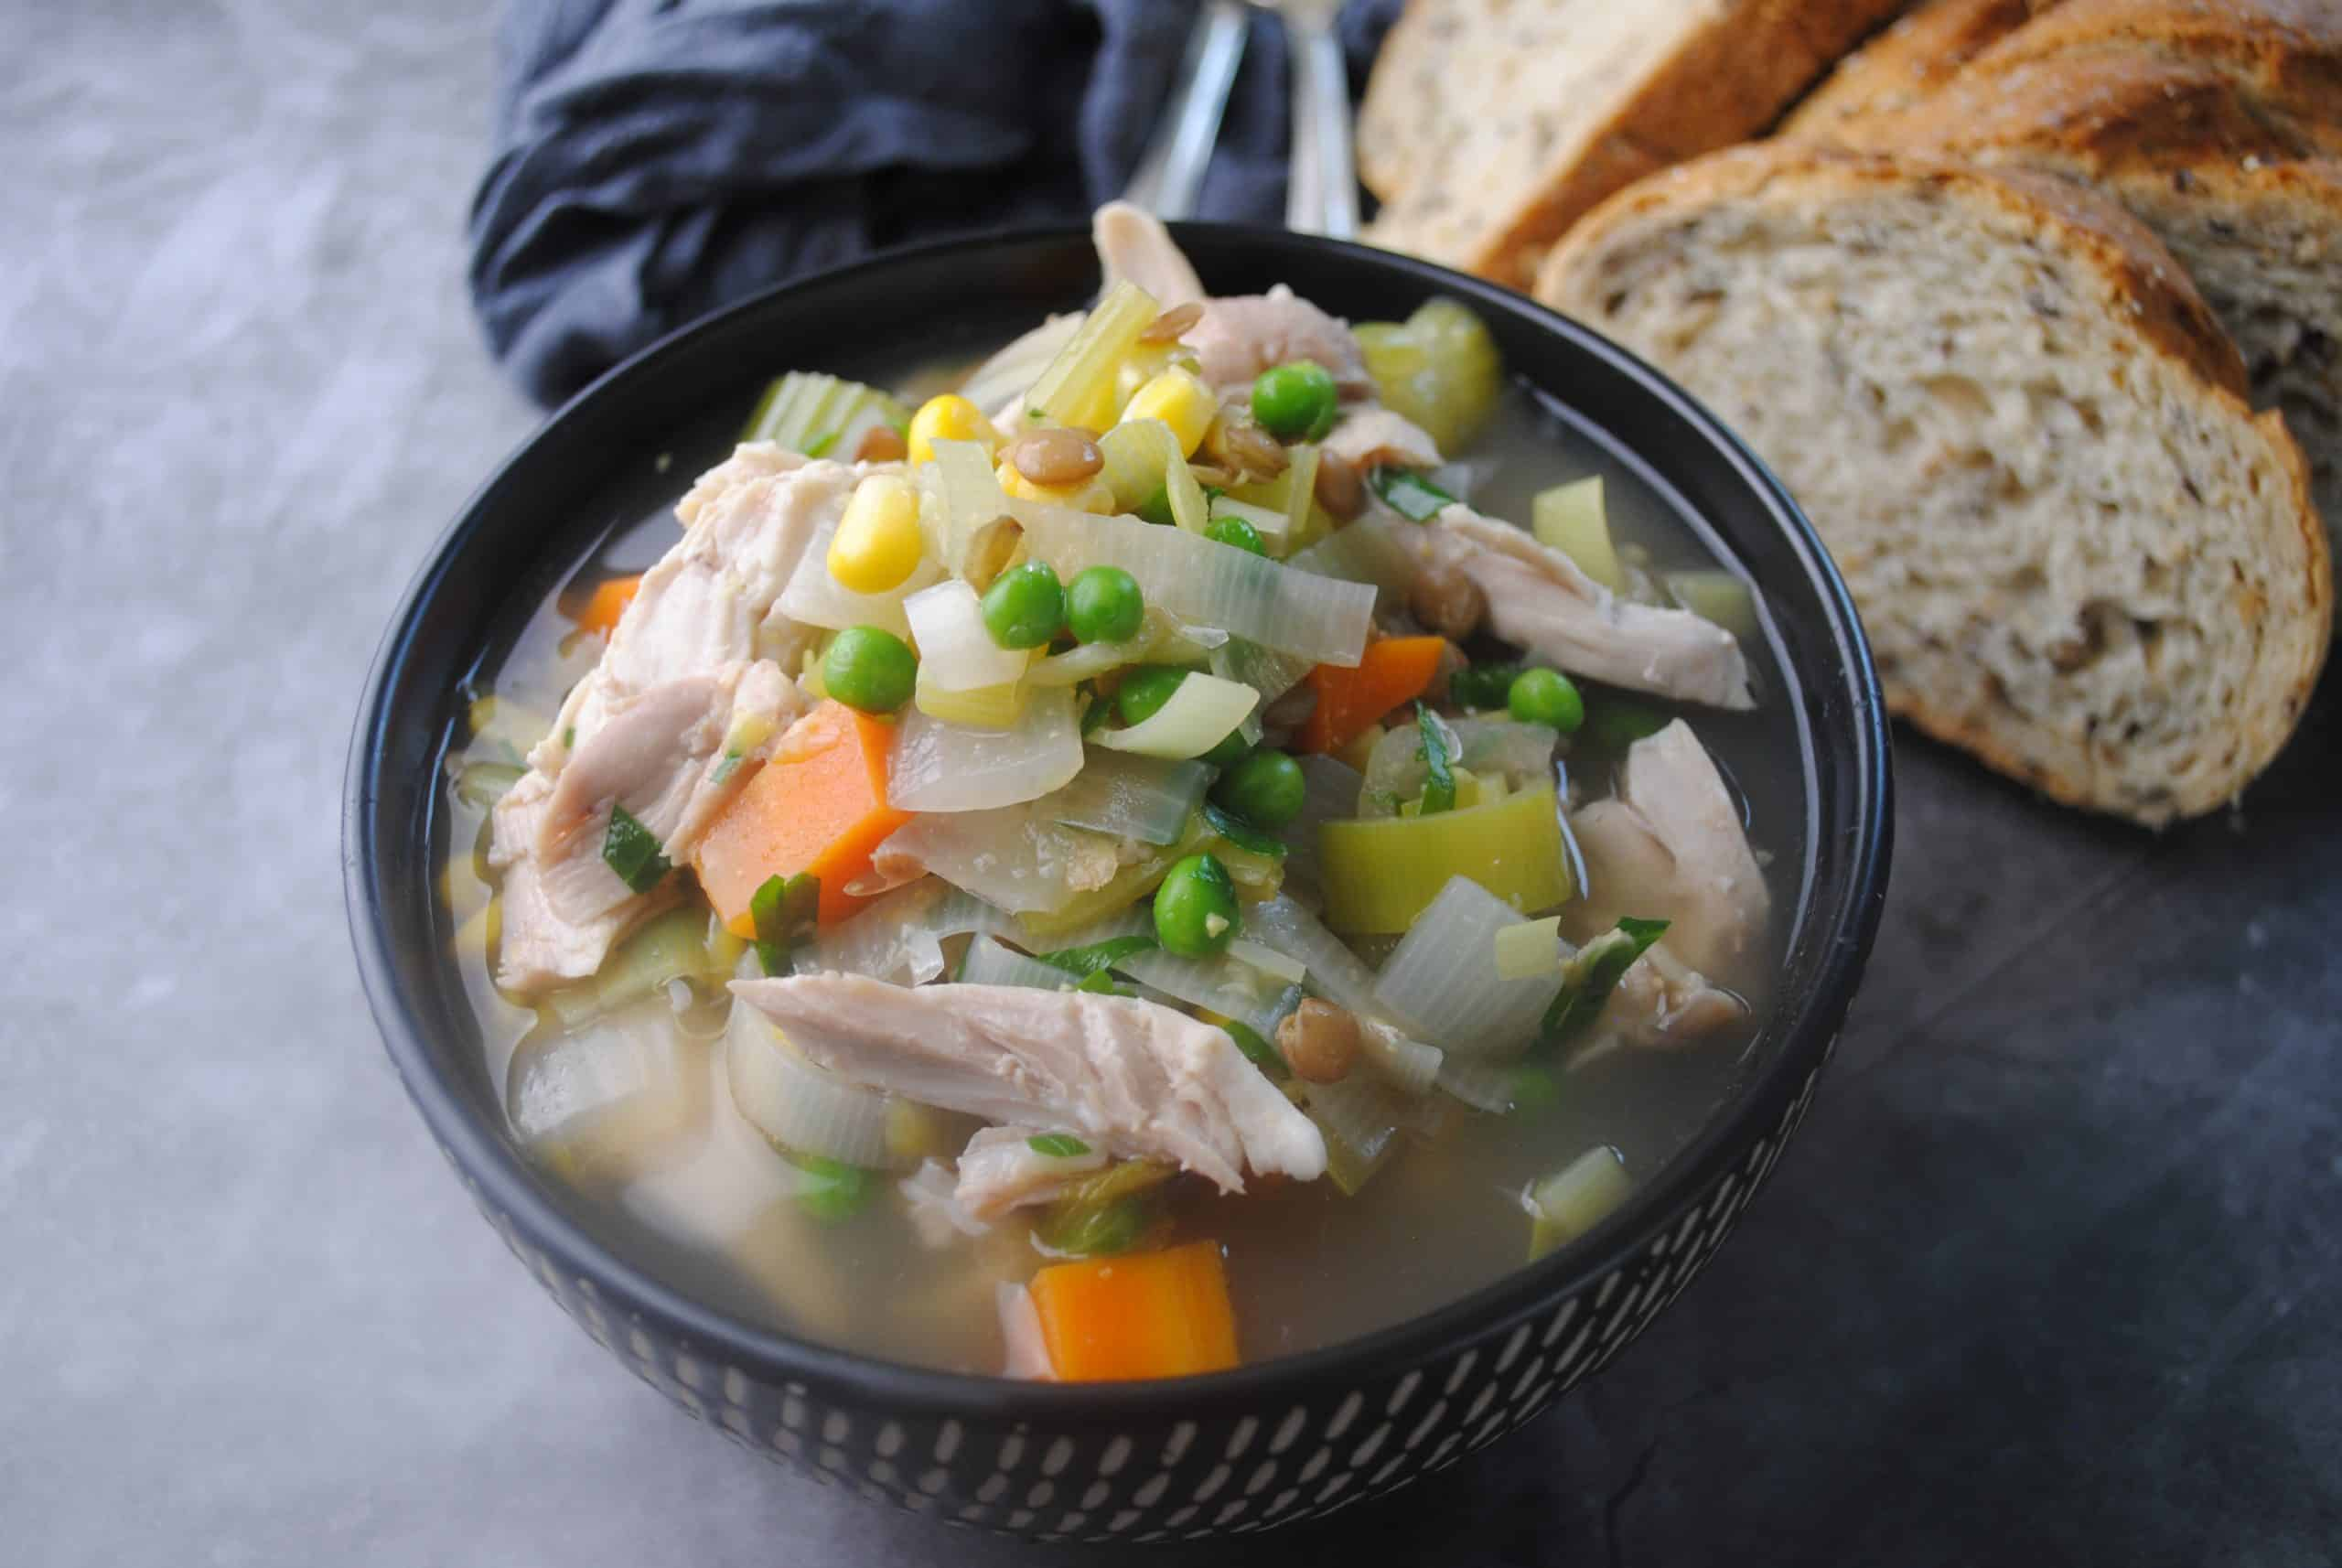 hearty chicken, vegetable and lentil soup ready to eat served in a dark bowl with crusty bread